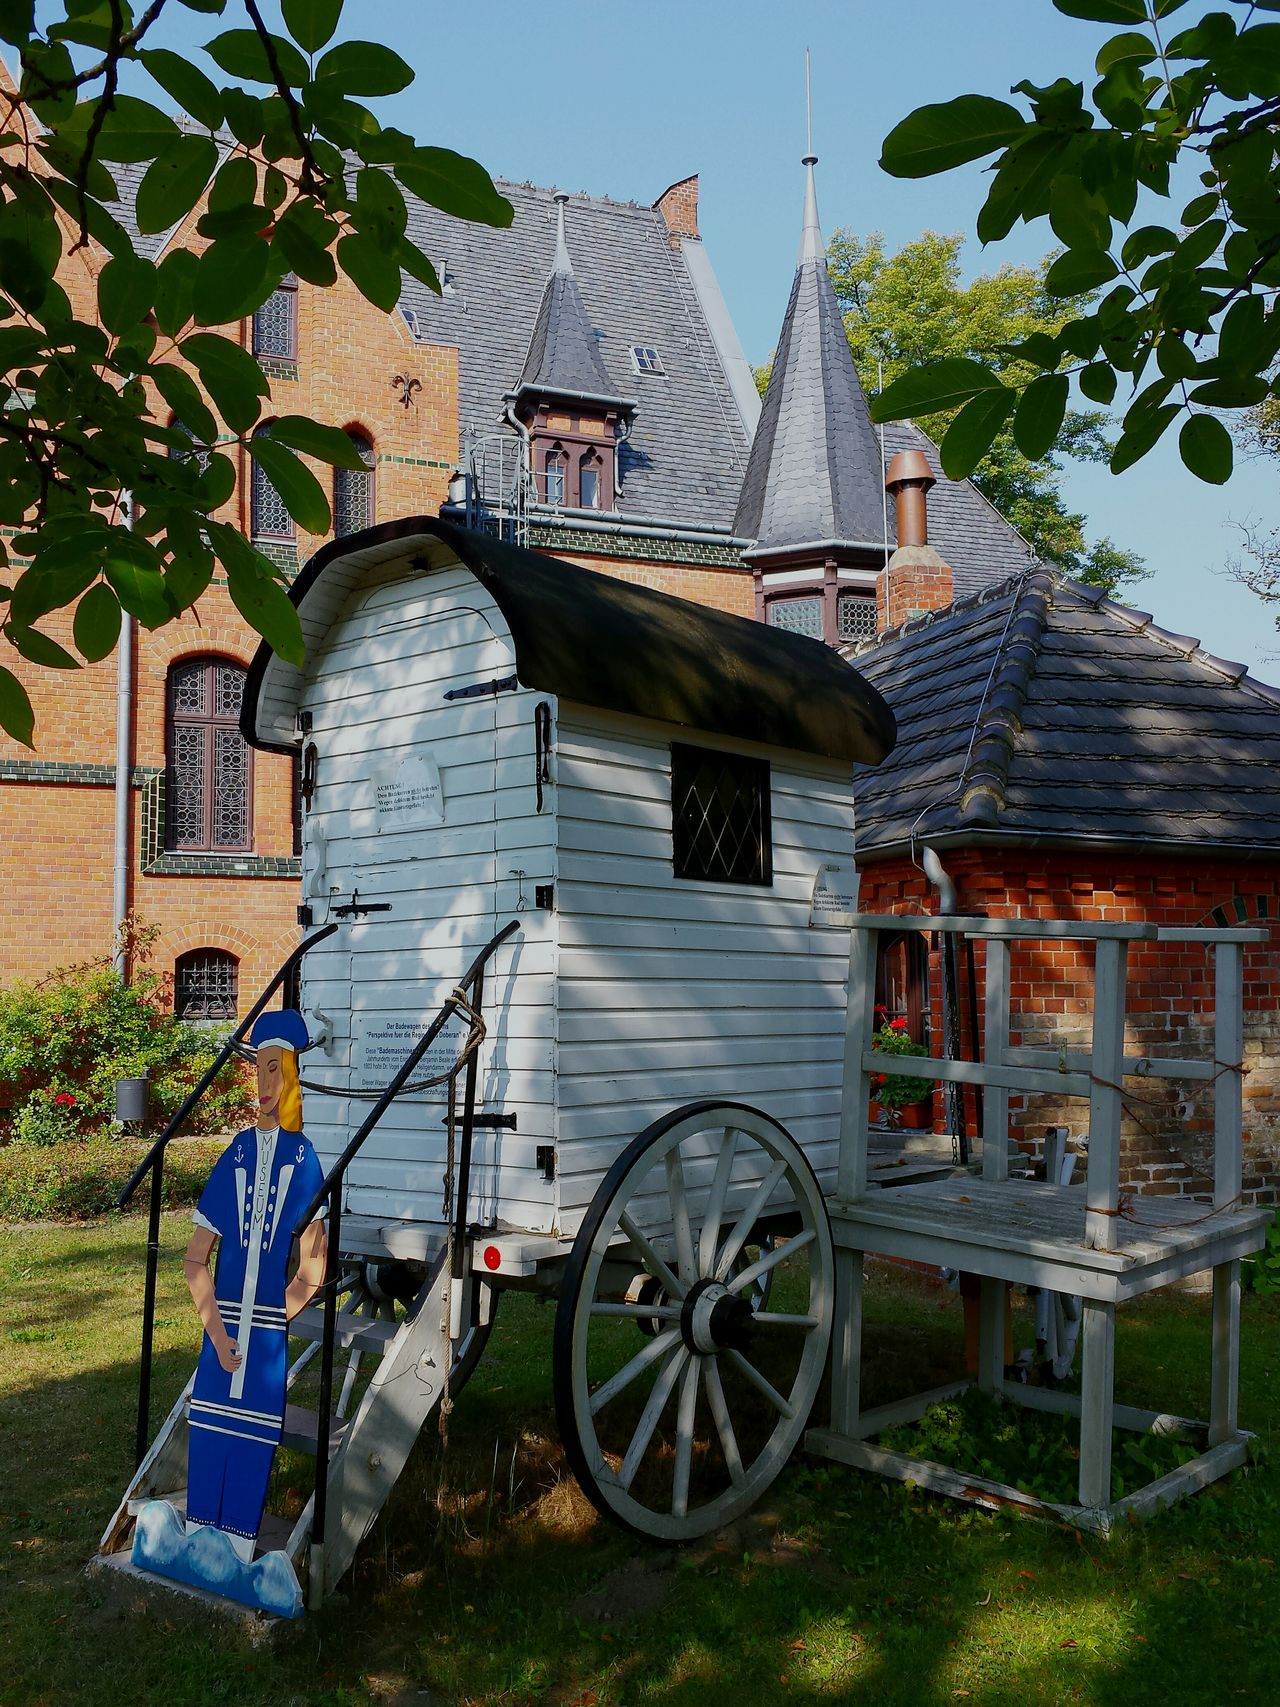 Architecture Built Structure Building Exterior Tree Land Vehicle Plant Outdoors Day Parked No People Ancient Beauty Badewagen Ancient Beach Waggon Bad Doberan Museum Ladyphotographerofthemonth Holiday POV Clear Sky Bad Doberan Tranquil Scene Museum Piece Naturally Framed Idyllic Historical Vehicle Bathing Coach